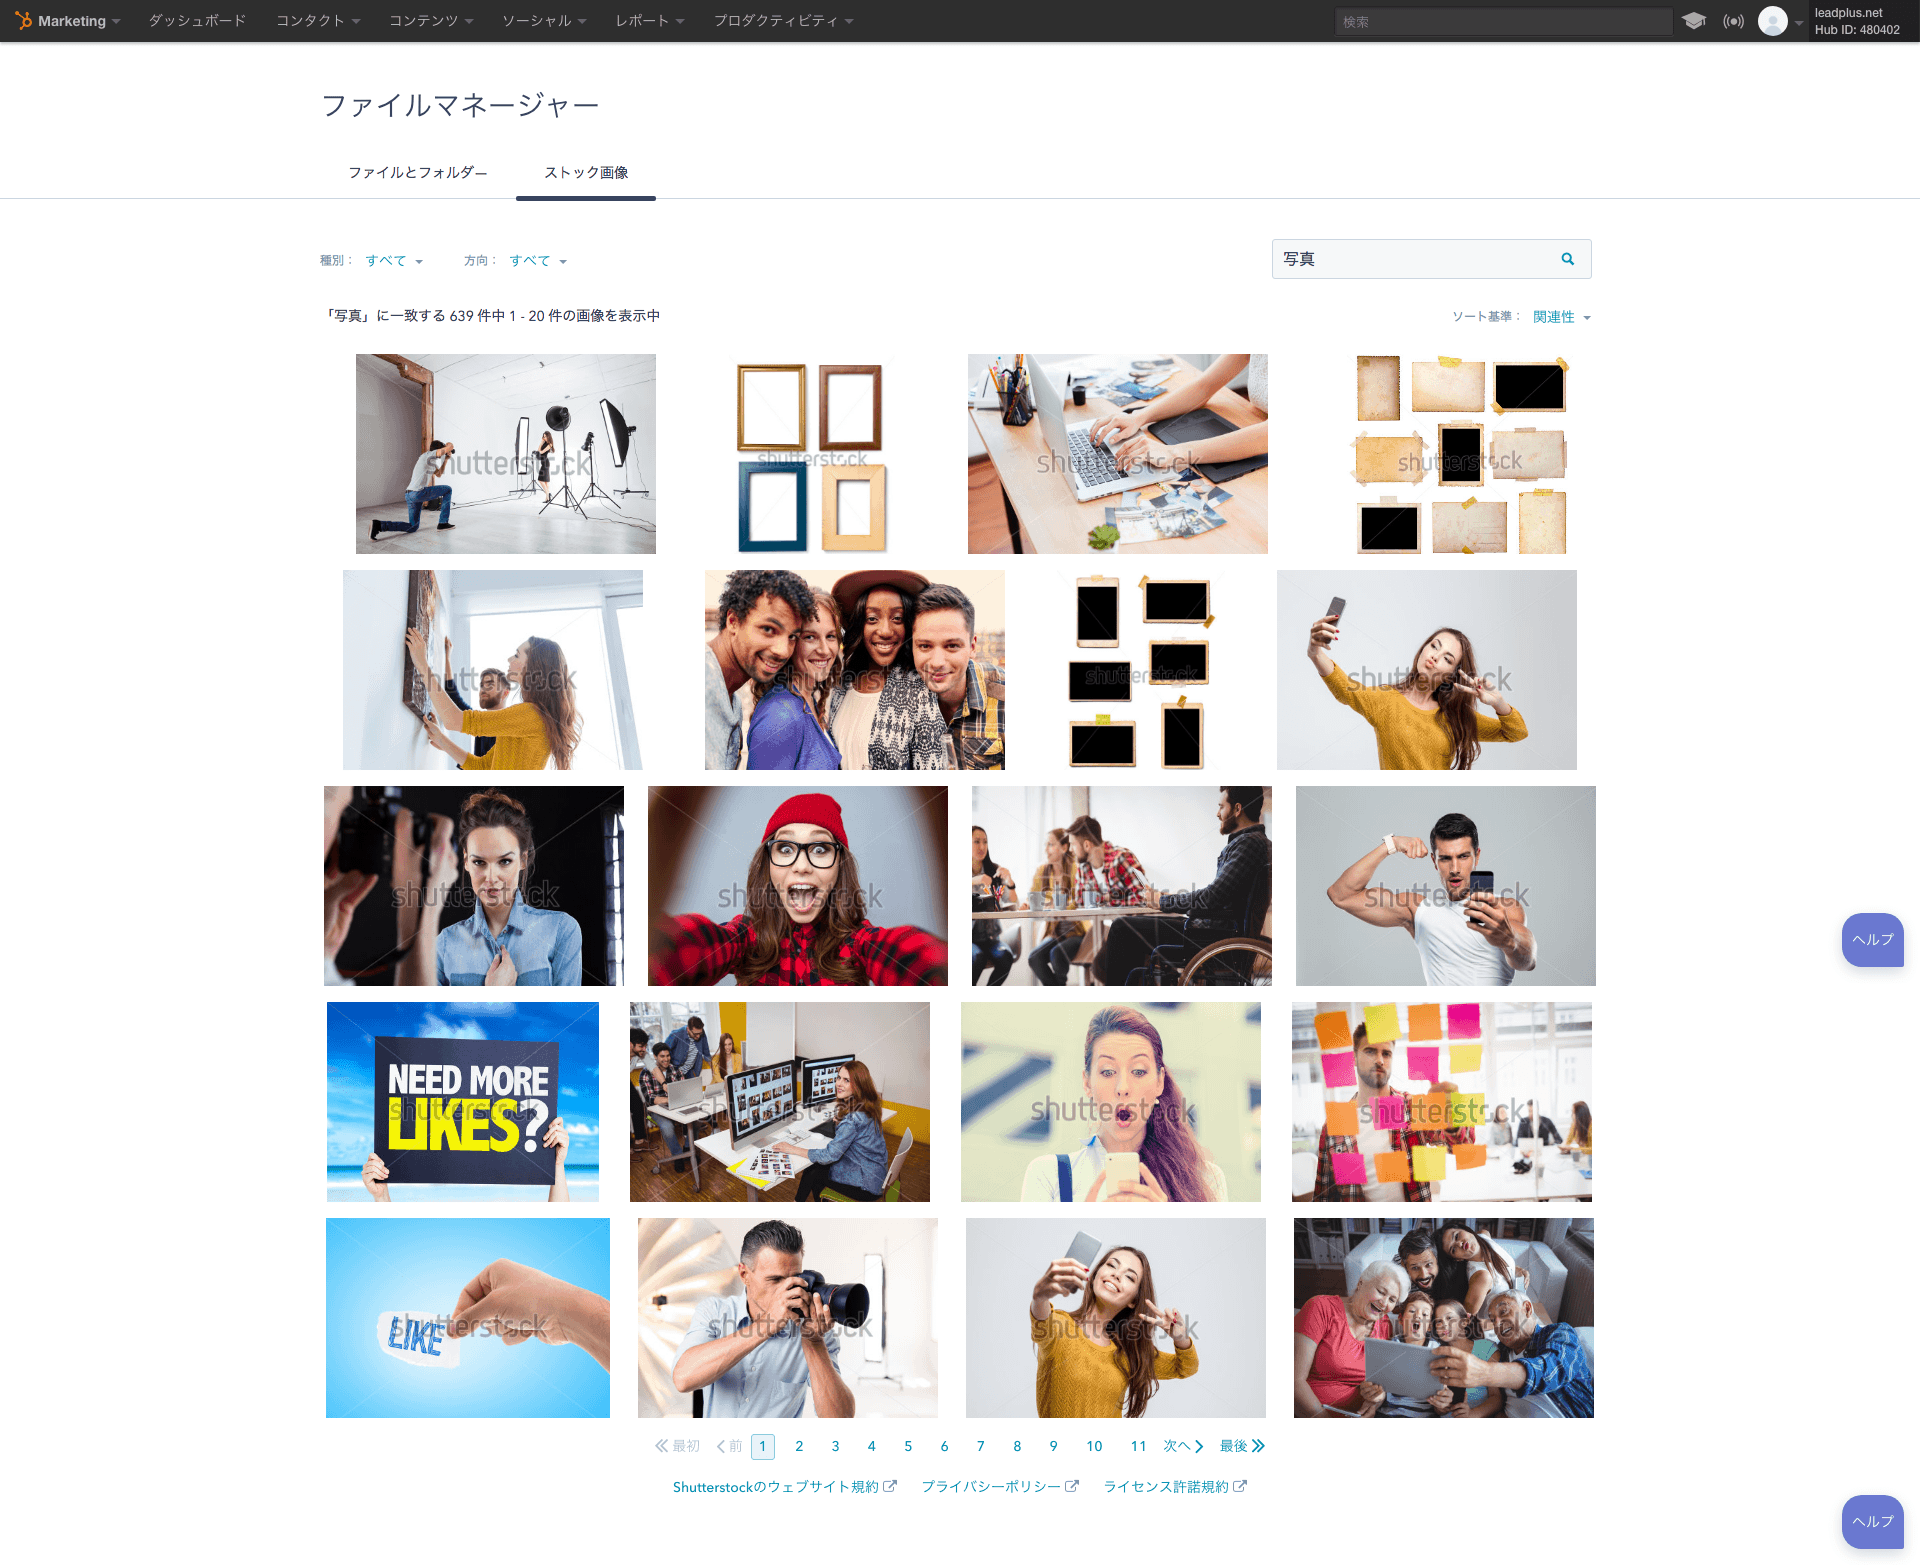 screencapture-app-hubspot-file-manager-beta-480402-stock-images-1494411478673.png